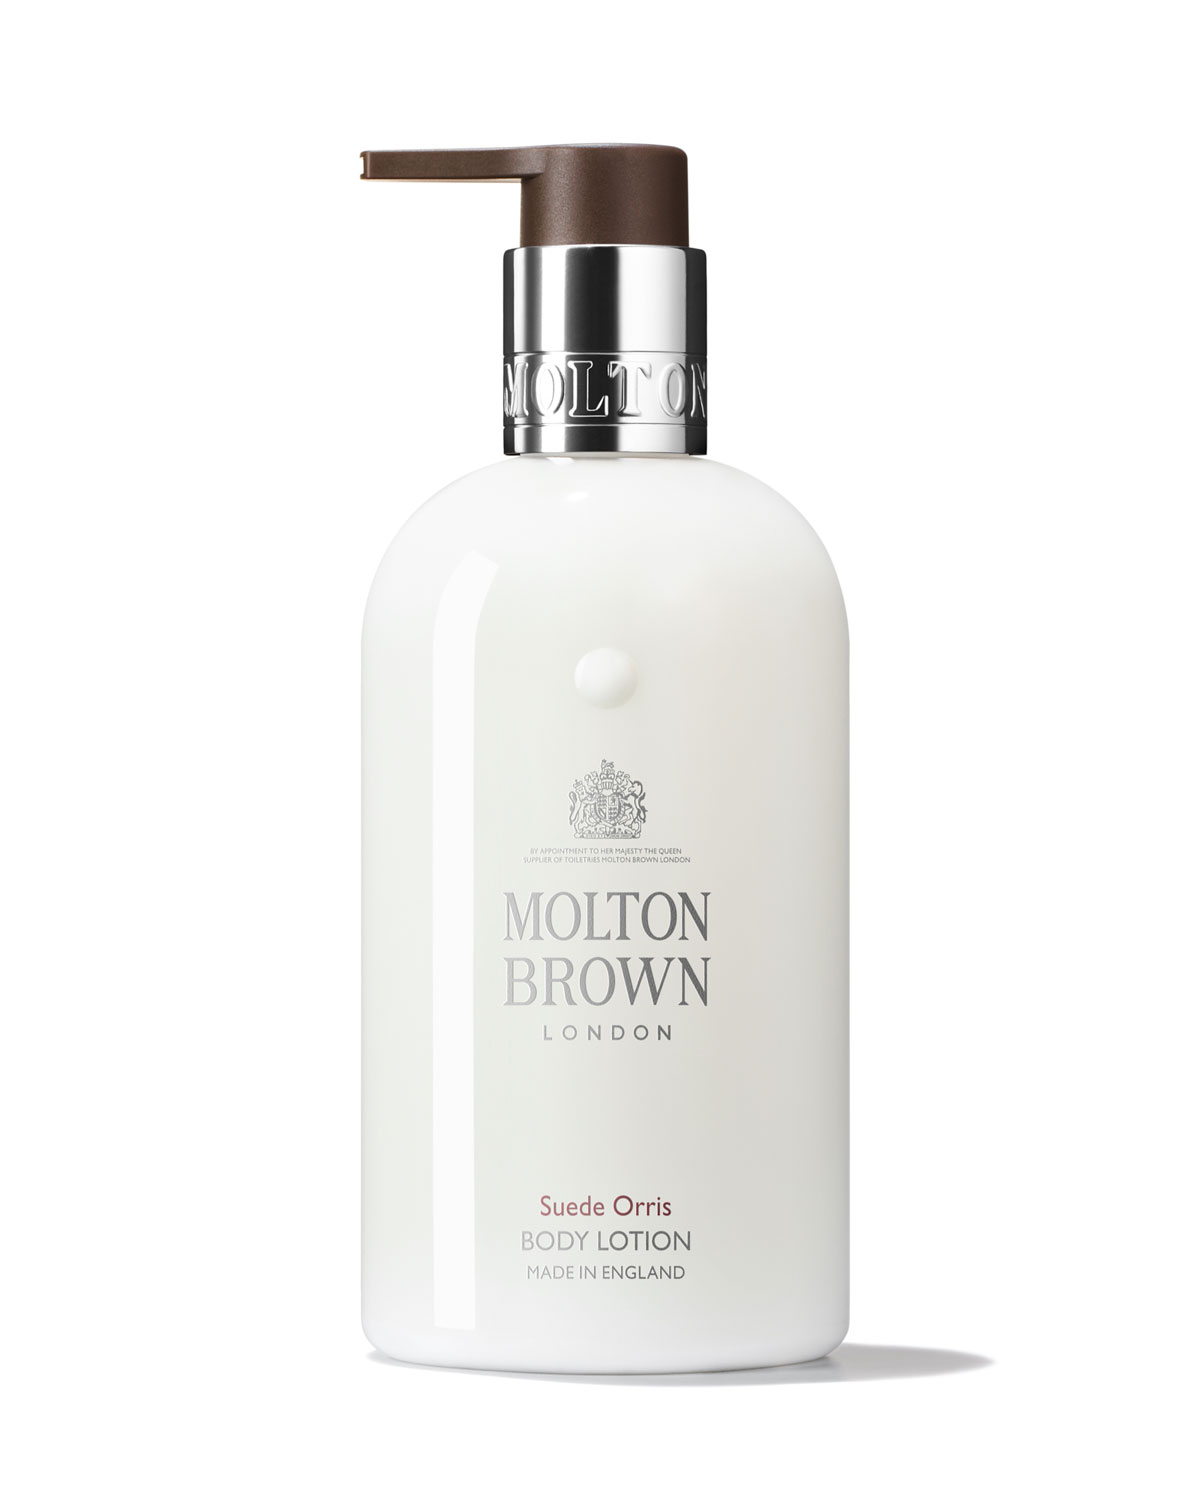 Molton Brown 10 oz. Suede Orris Body Lotion